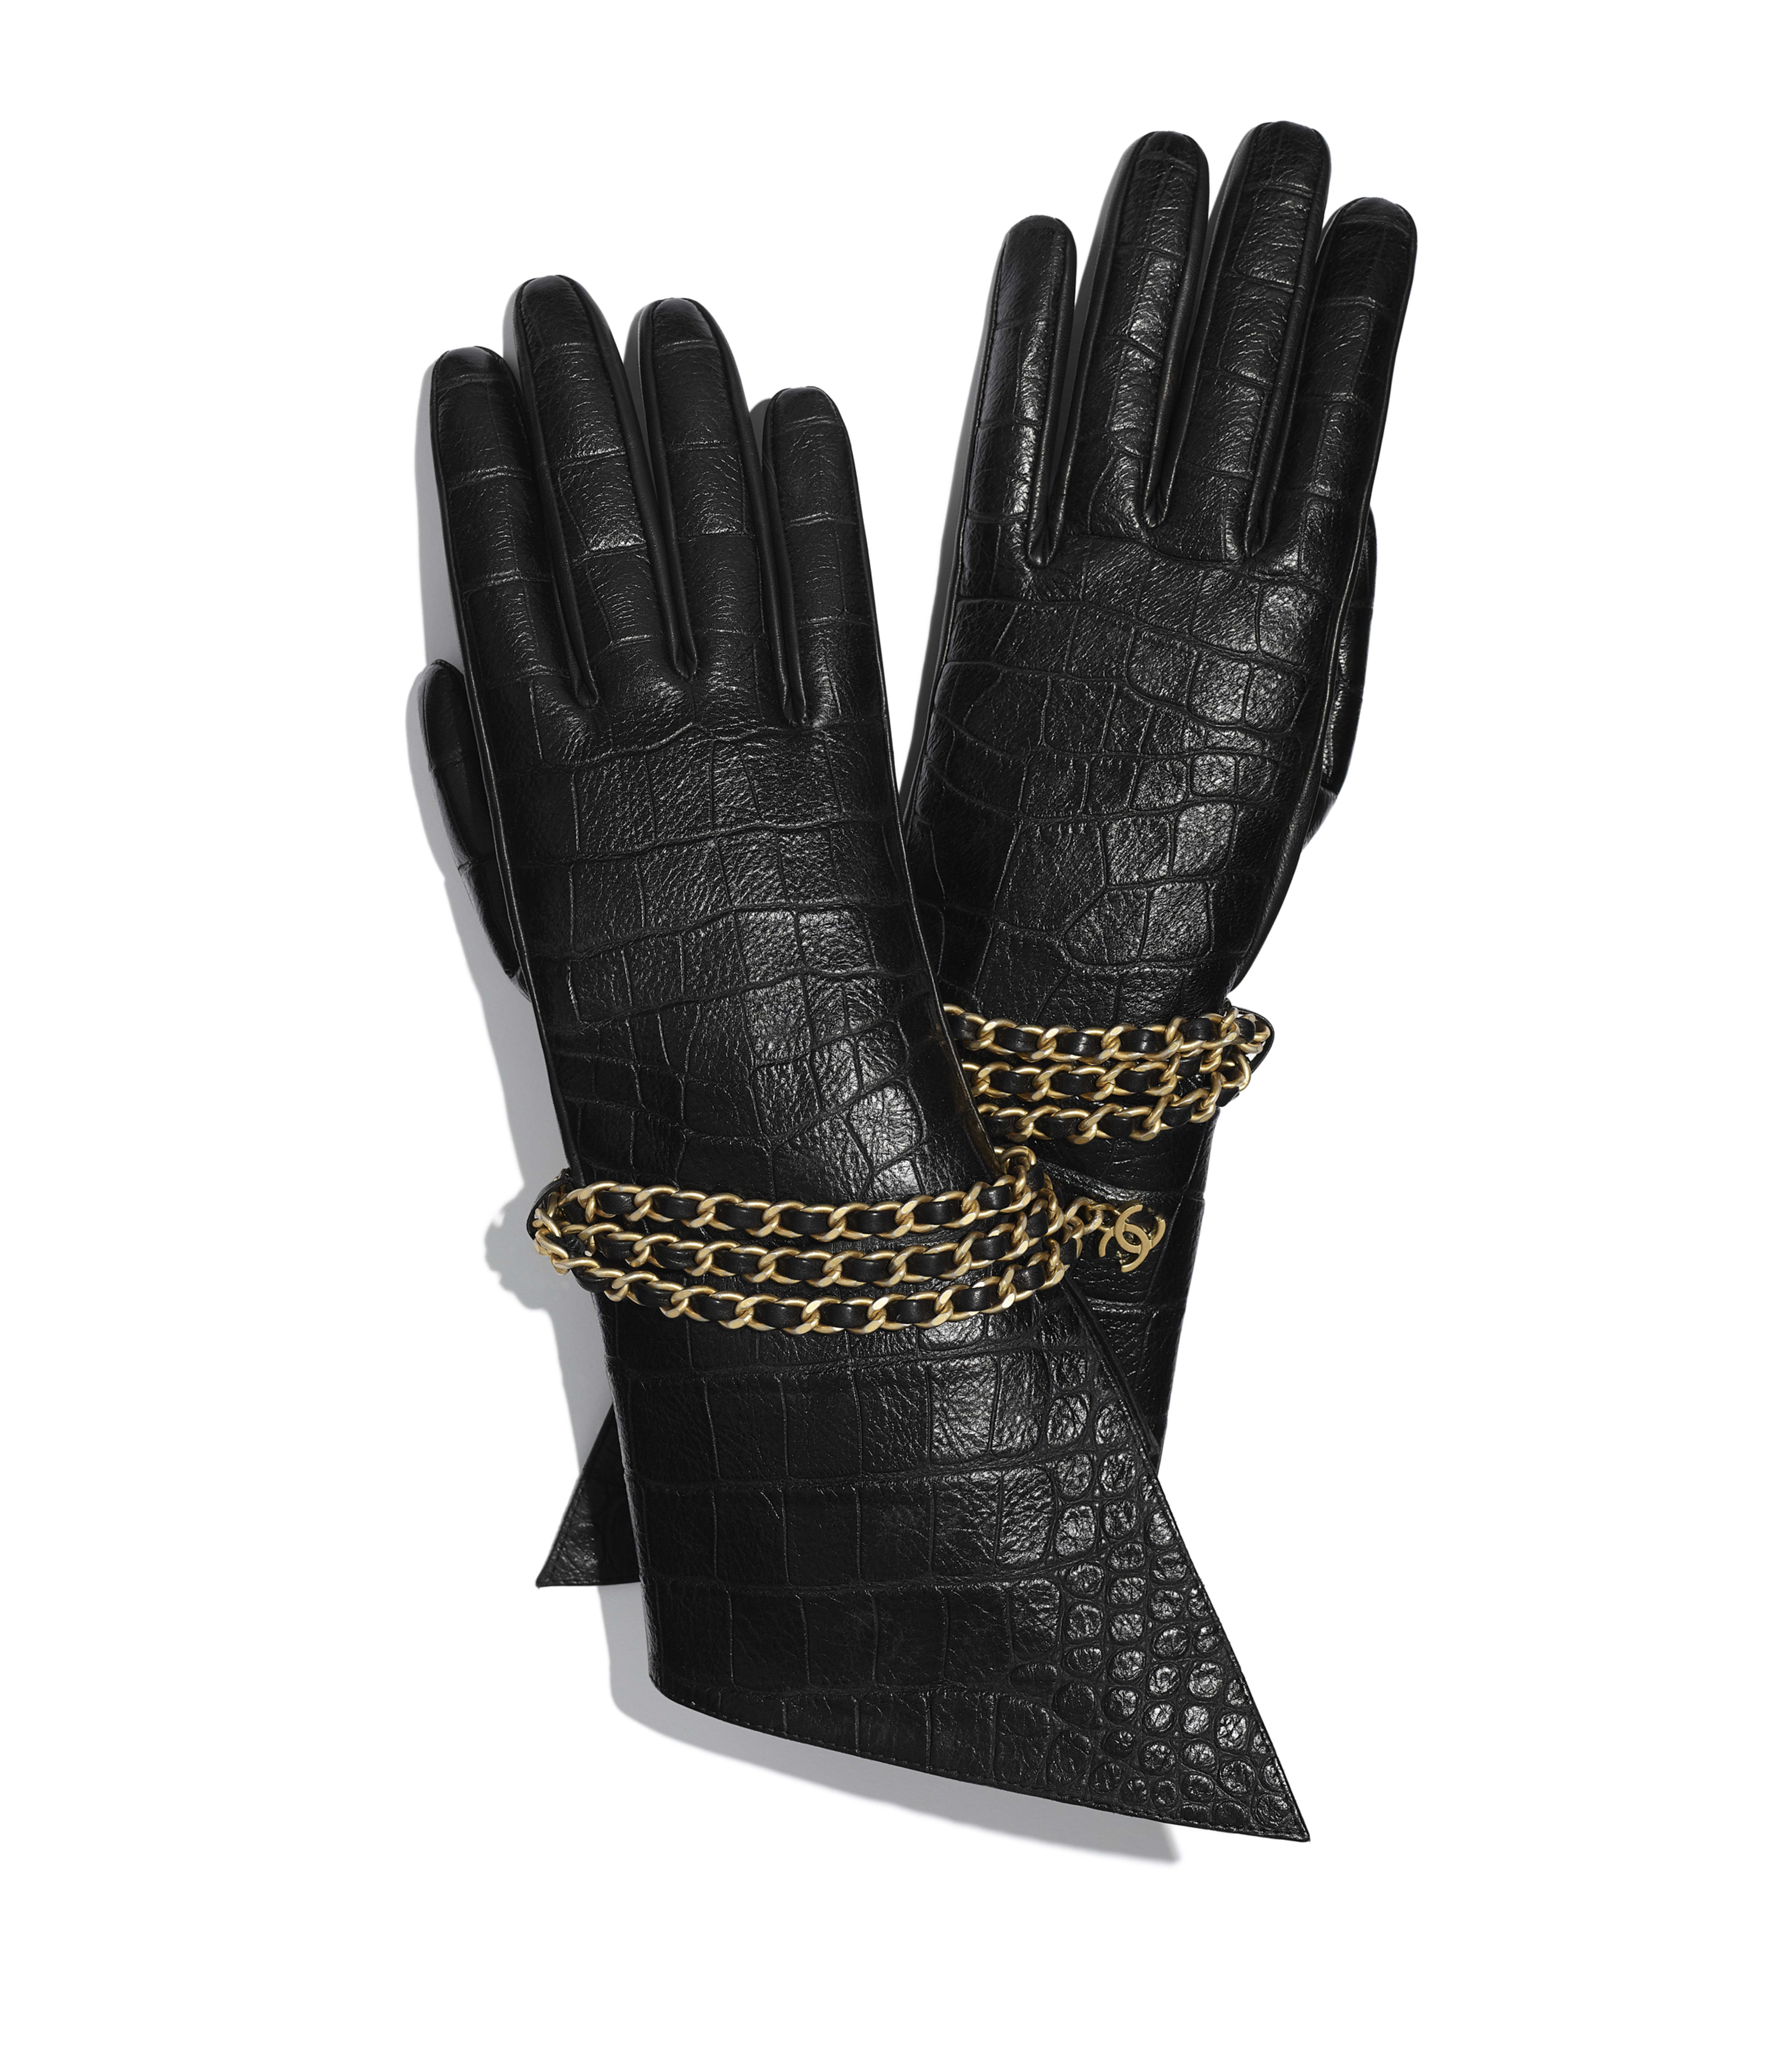 fba851893c Gloves - Other accessories | CHANEL